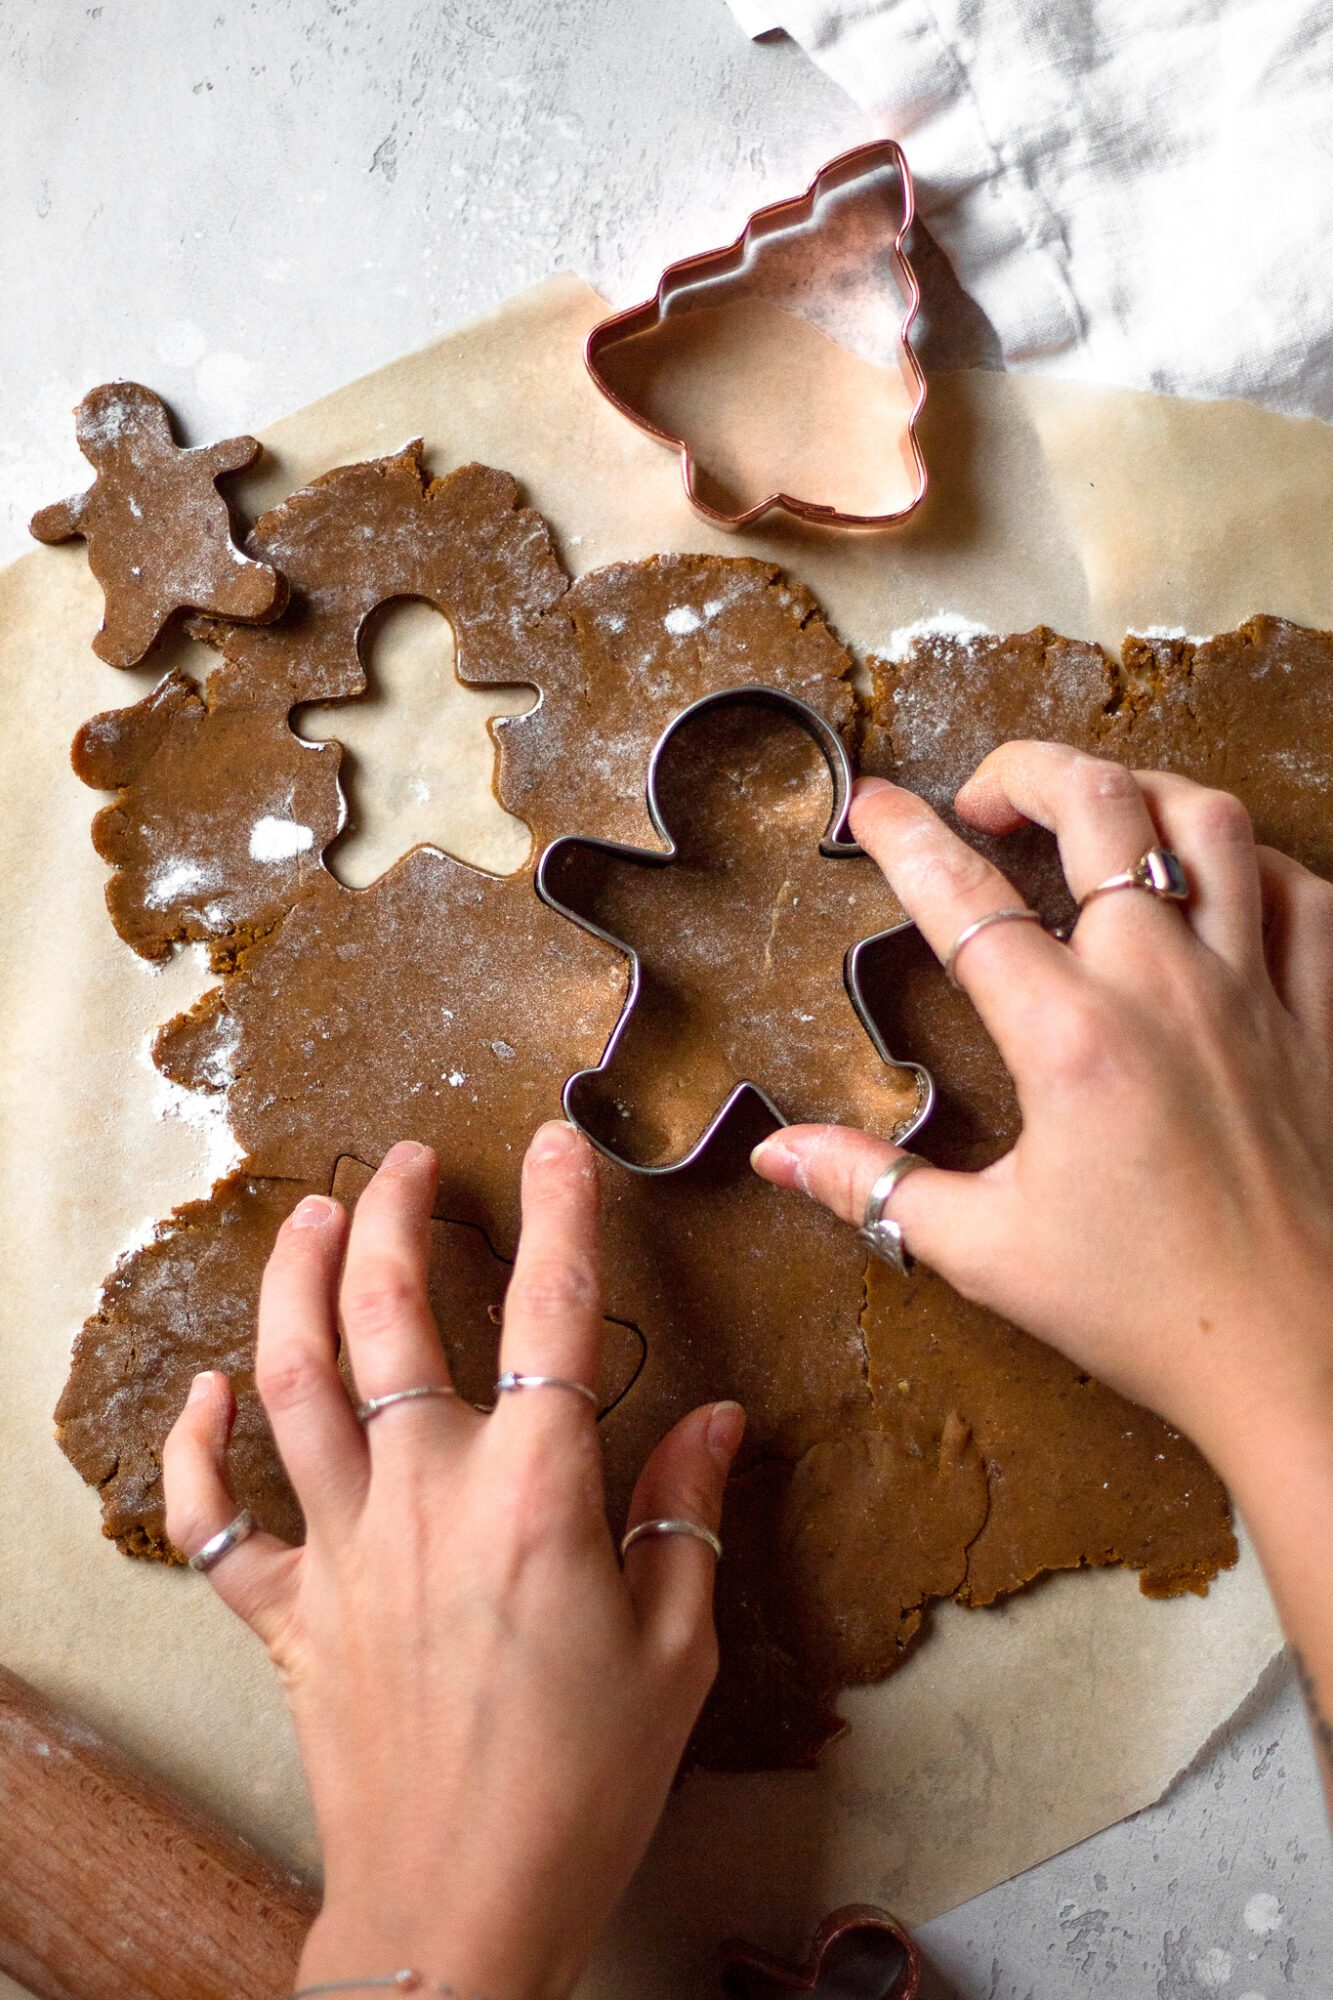 hand pressing cookie cutter into dough